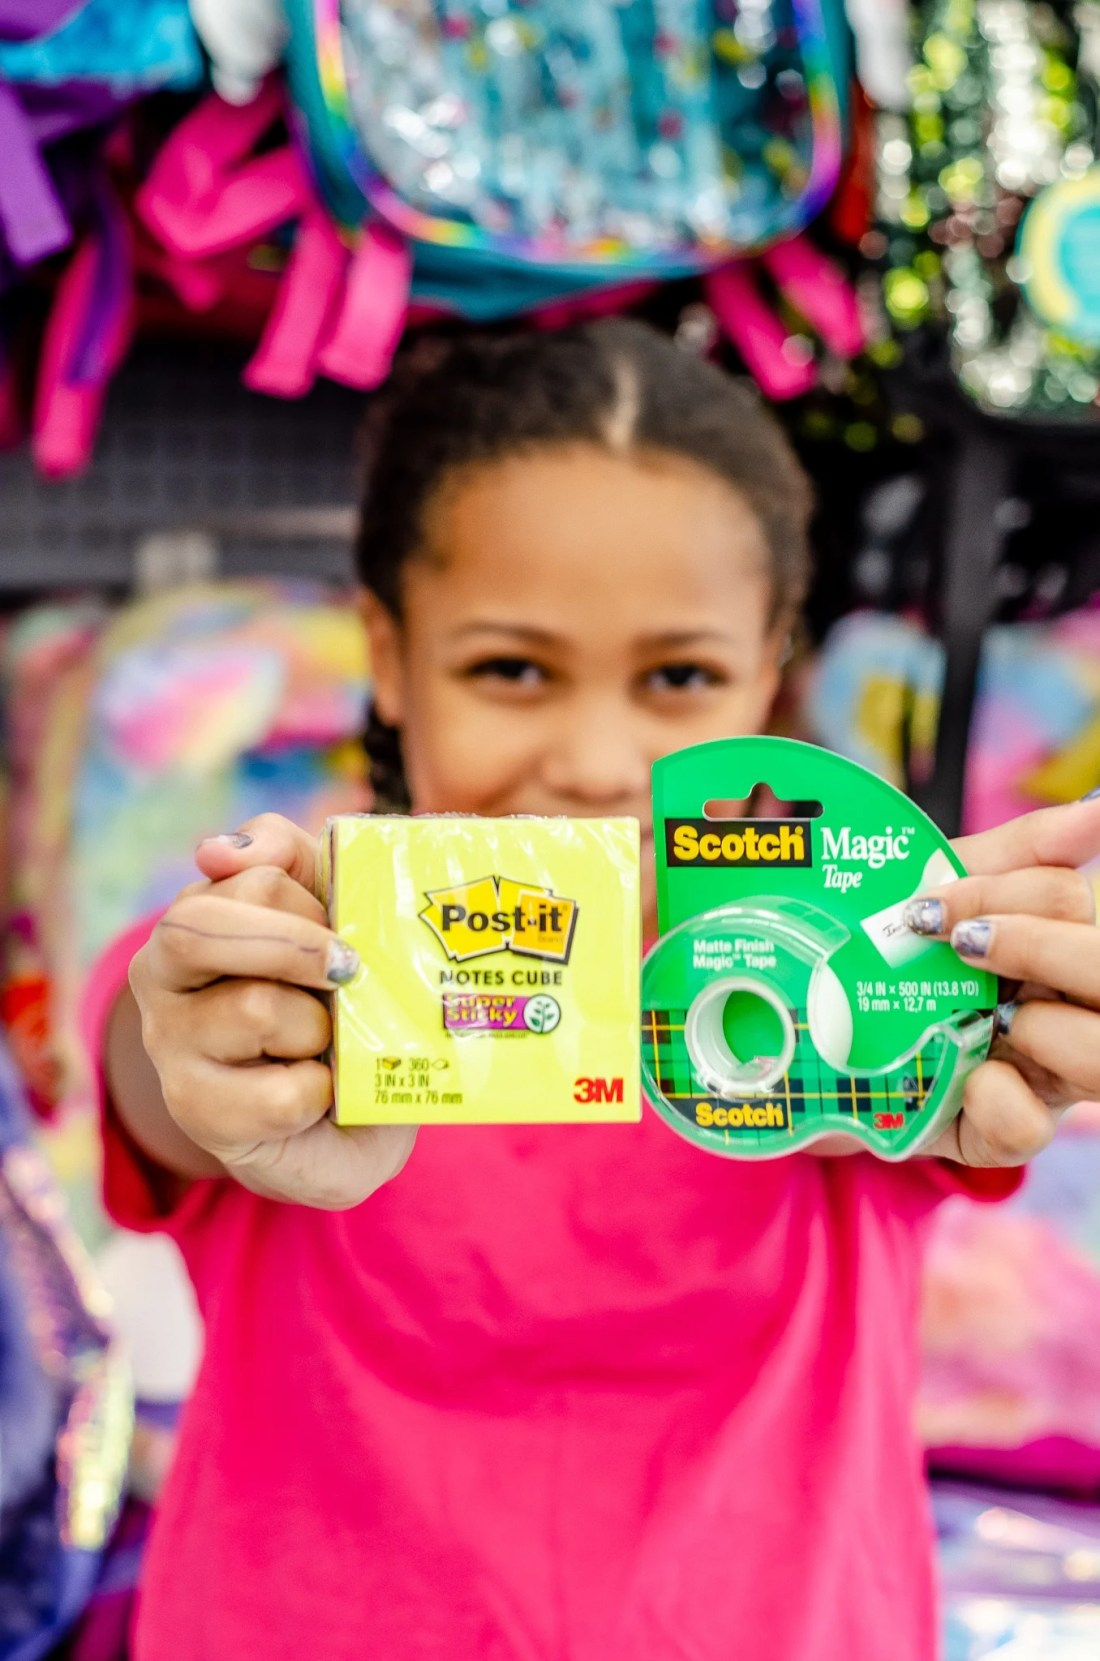 Keturah Walmart Post it Scotch Fandango offer.. This year if you purchase $10 worth of any Post-it® and Scotch® Back to School stationery products from your local Walmart. You will receive a $10 Fandango promo code for your next movie ticket purchase.